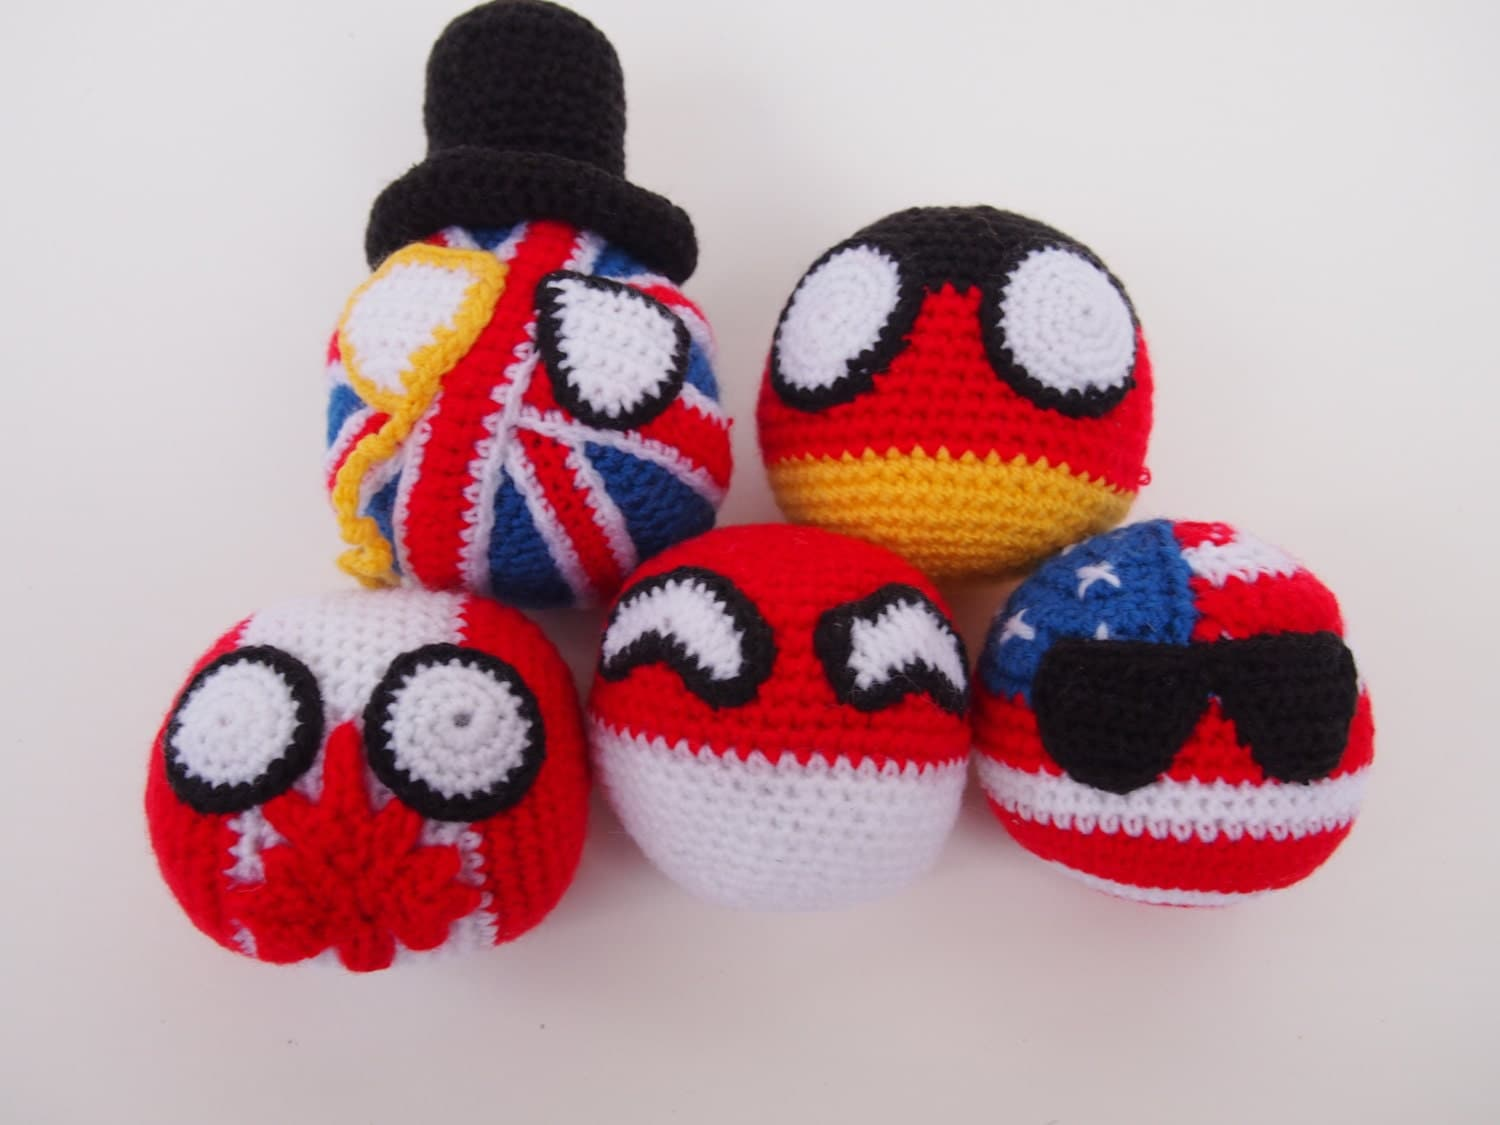 new countryball plushies ive - photo #20